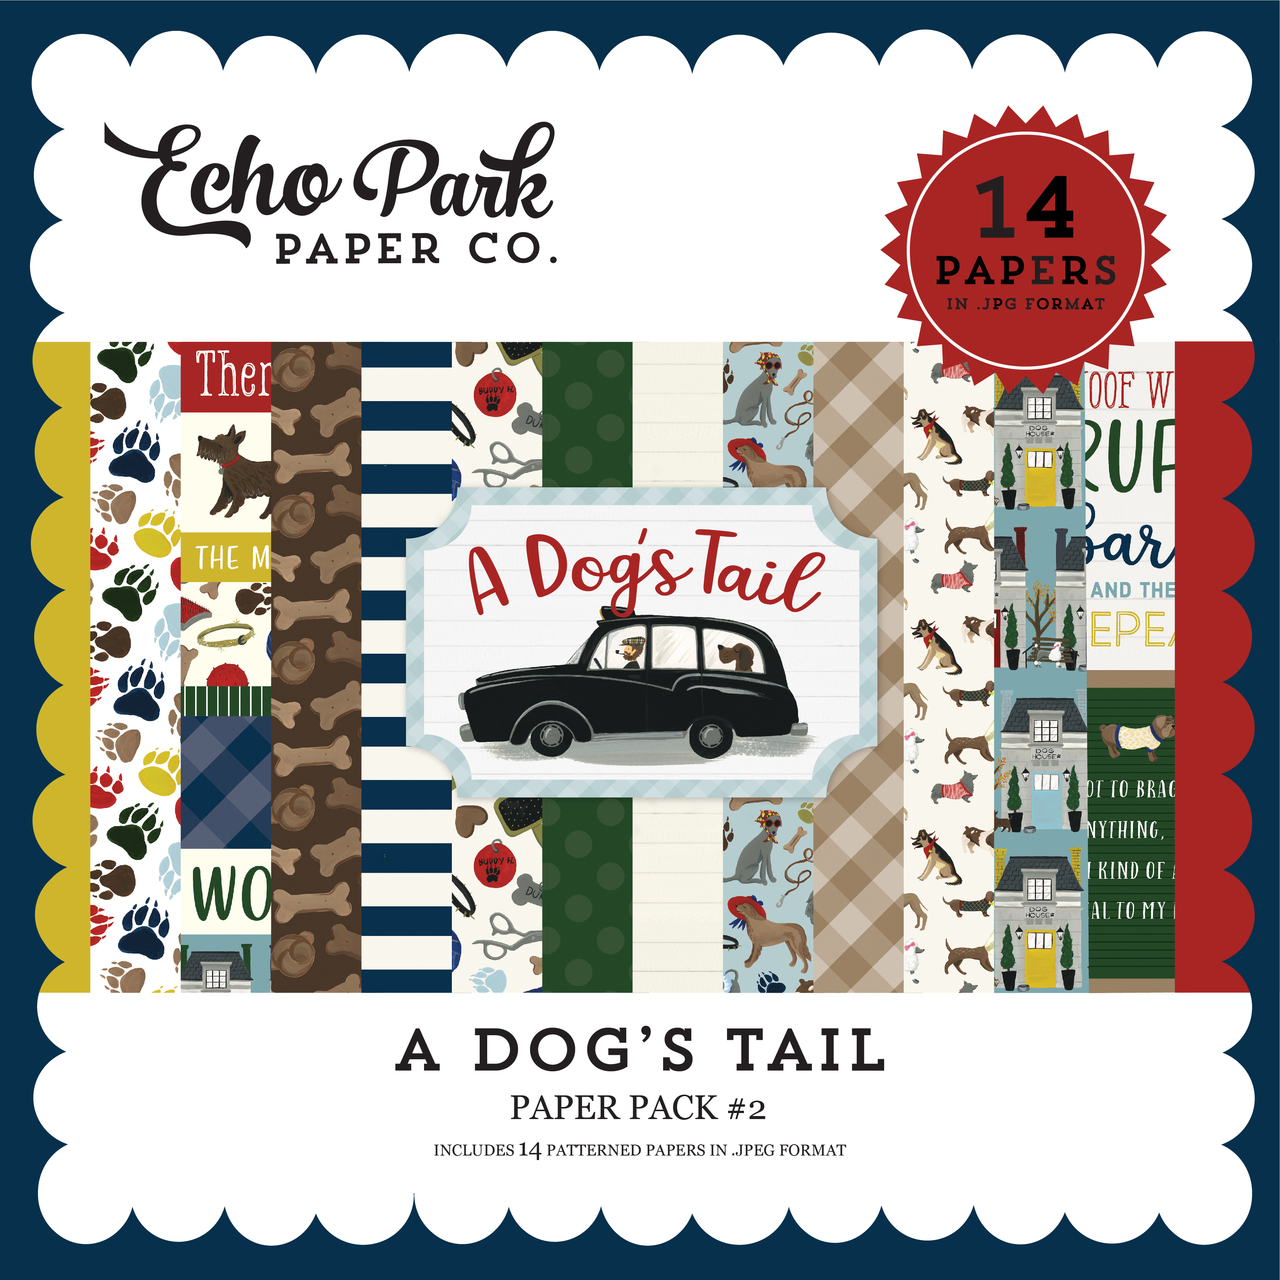 A Dog's Tail Paper Pack #2